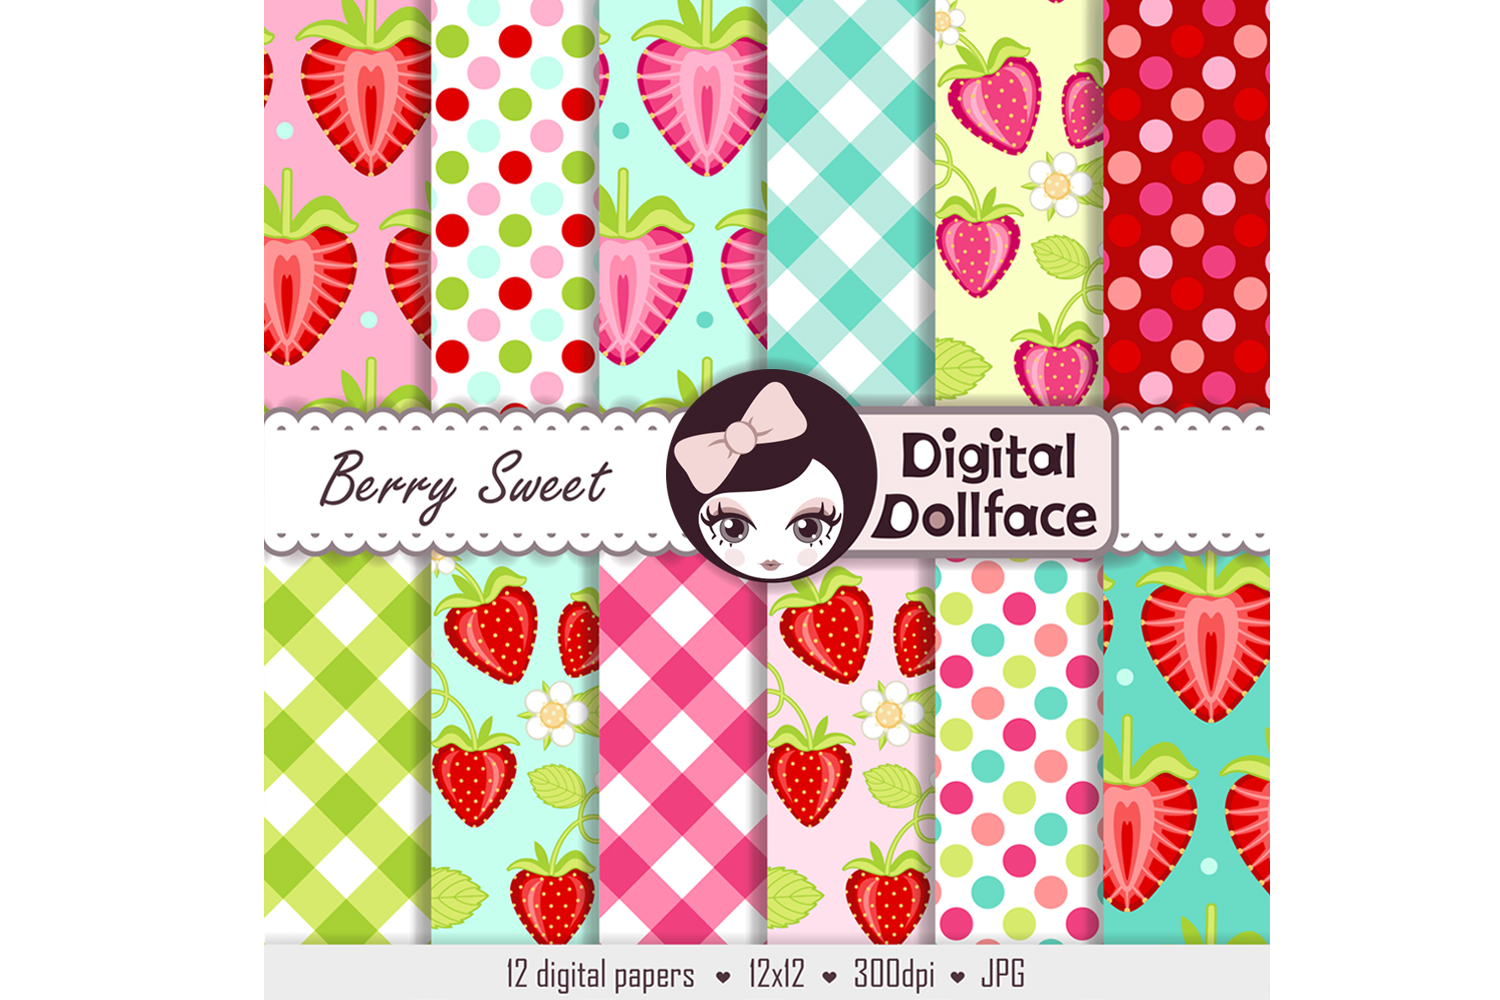 Strawberry Digital Paper / Berry Sweet Patterns example image 2